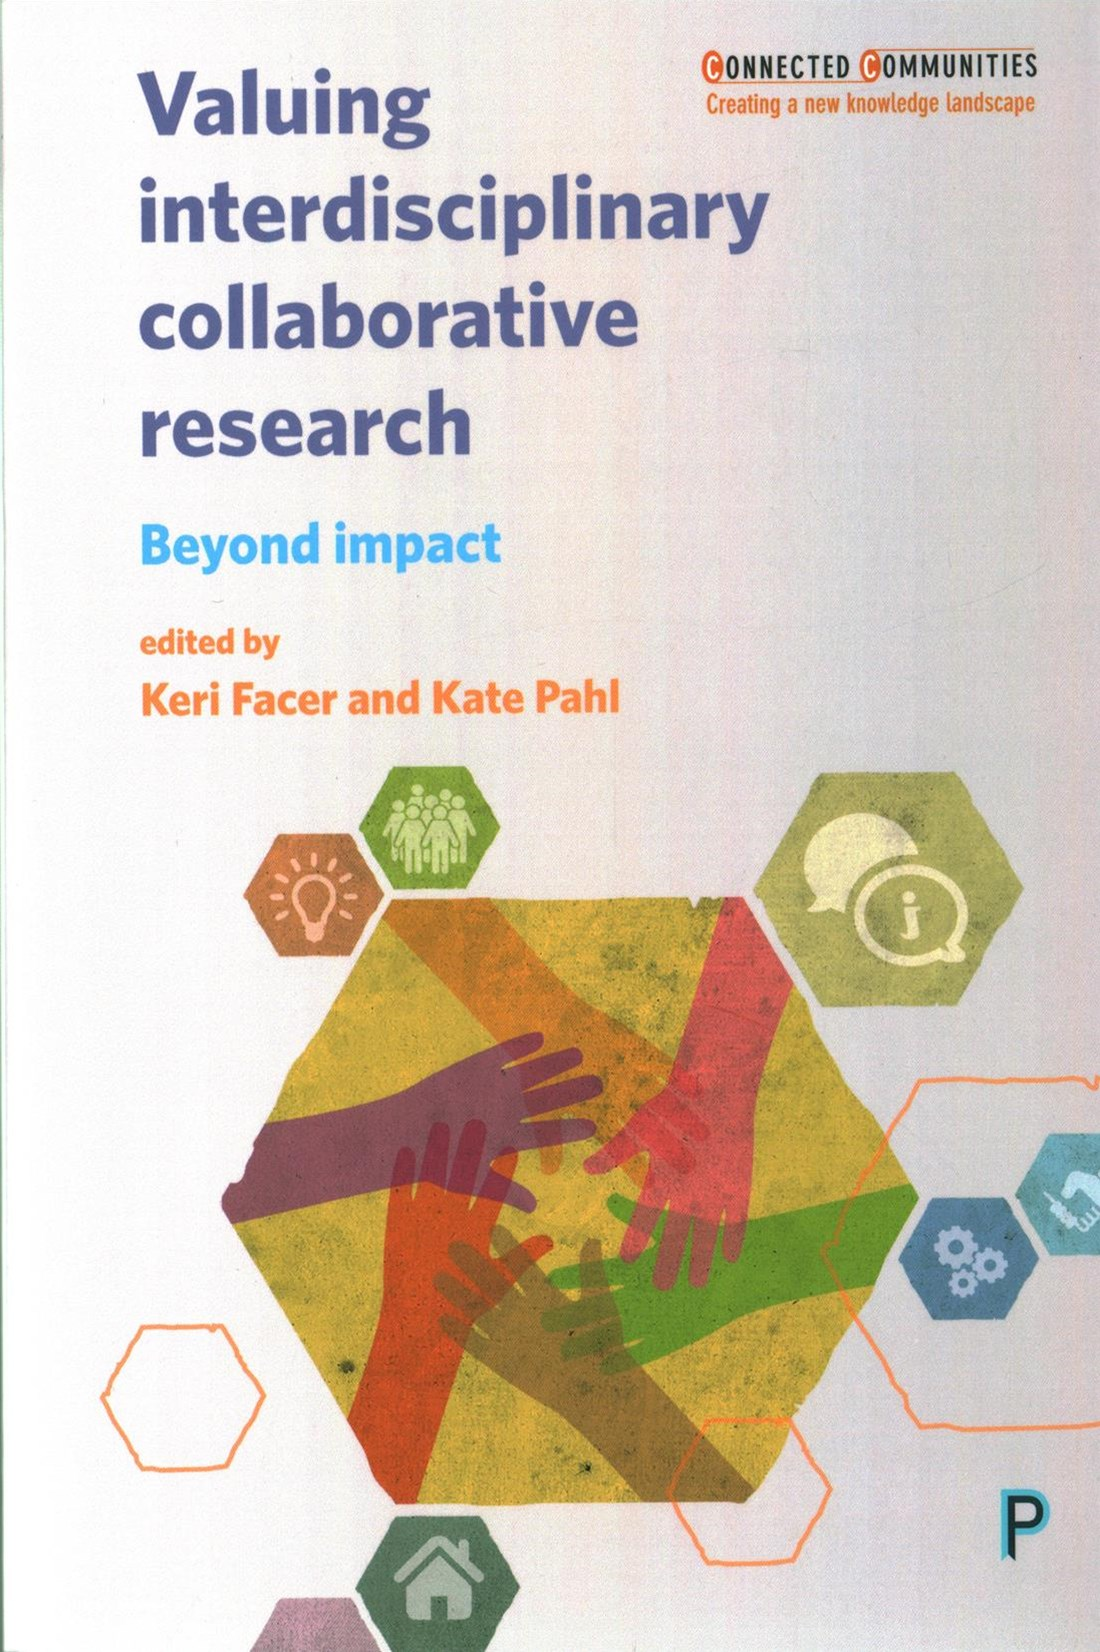 Valuing interdisciplinary collaborative research